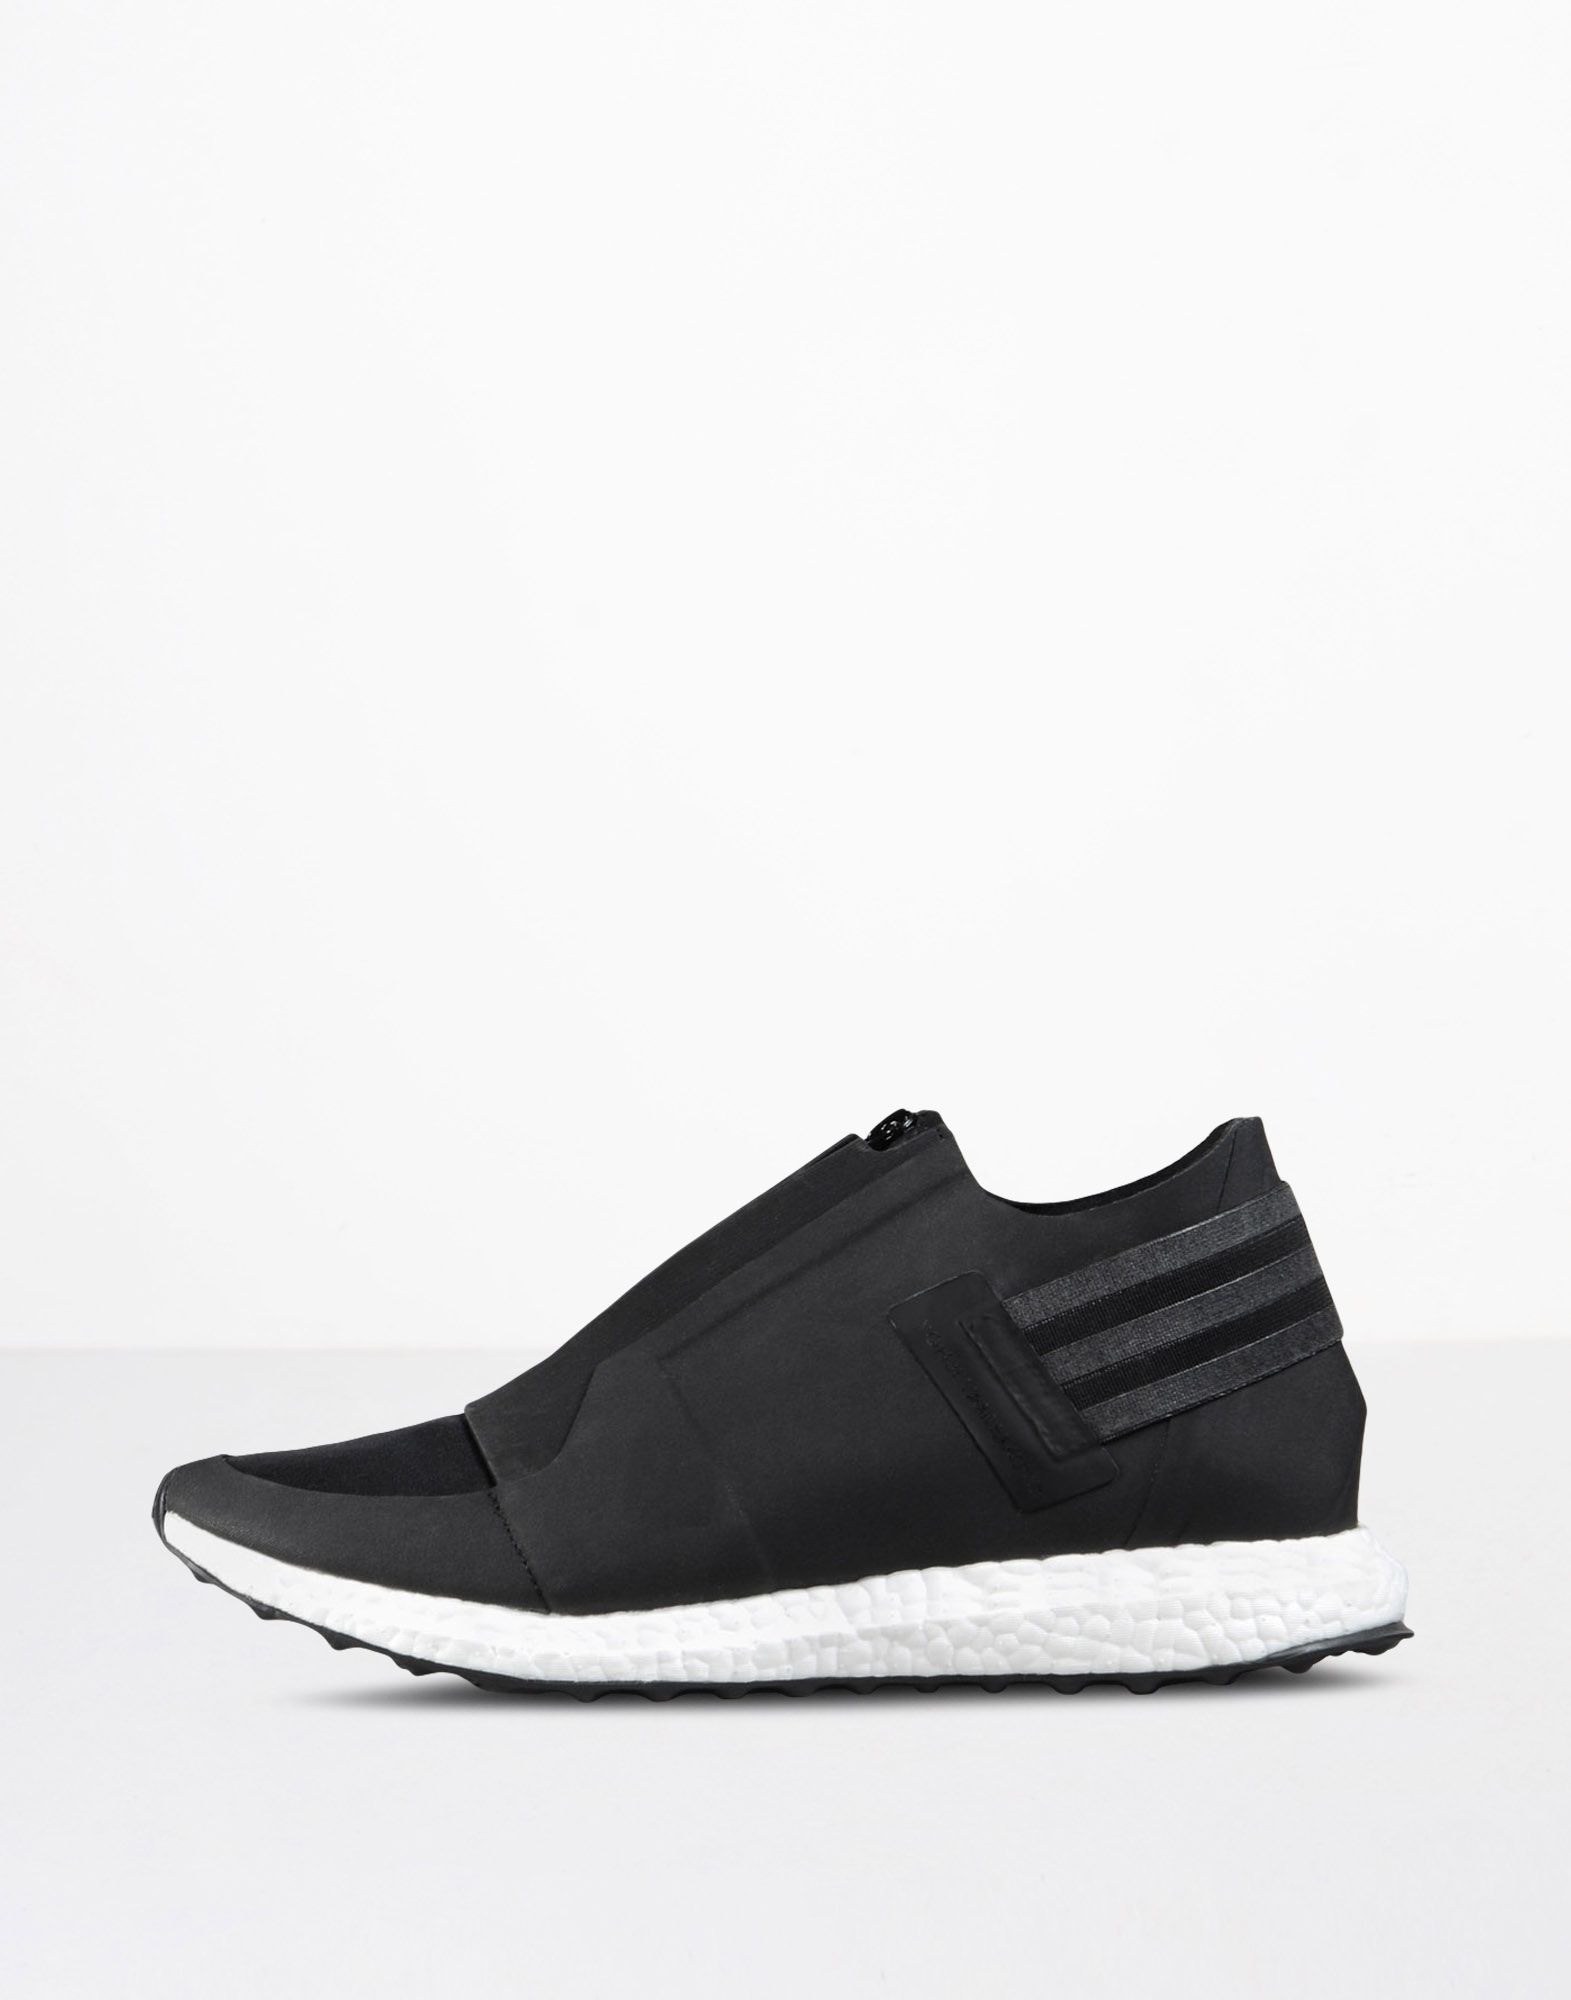 cfcb9faee6447 ... Y-3 Y-3 XRAY ZIP LOW Sneakers Man ...